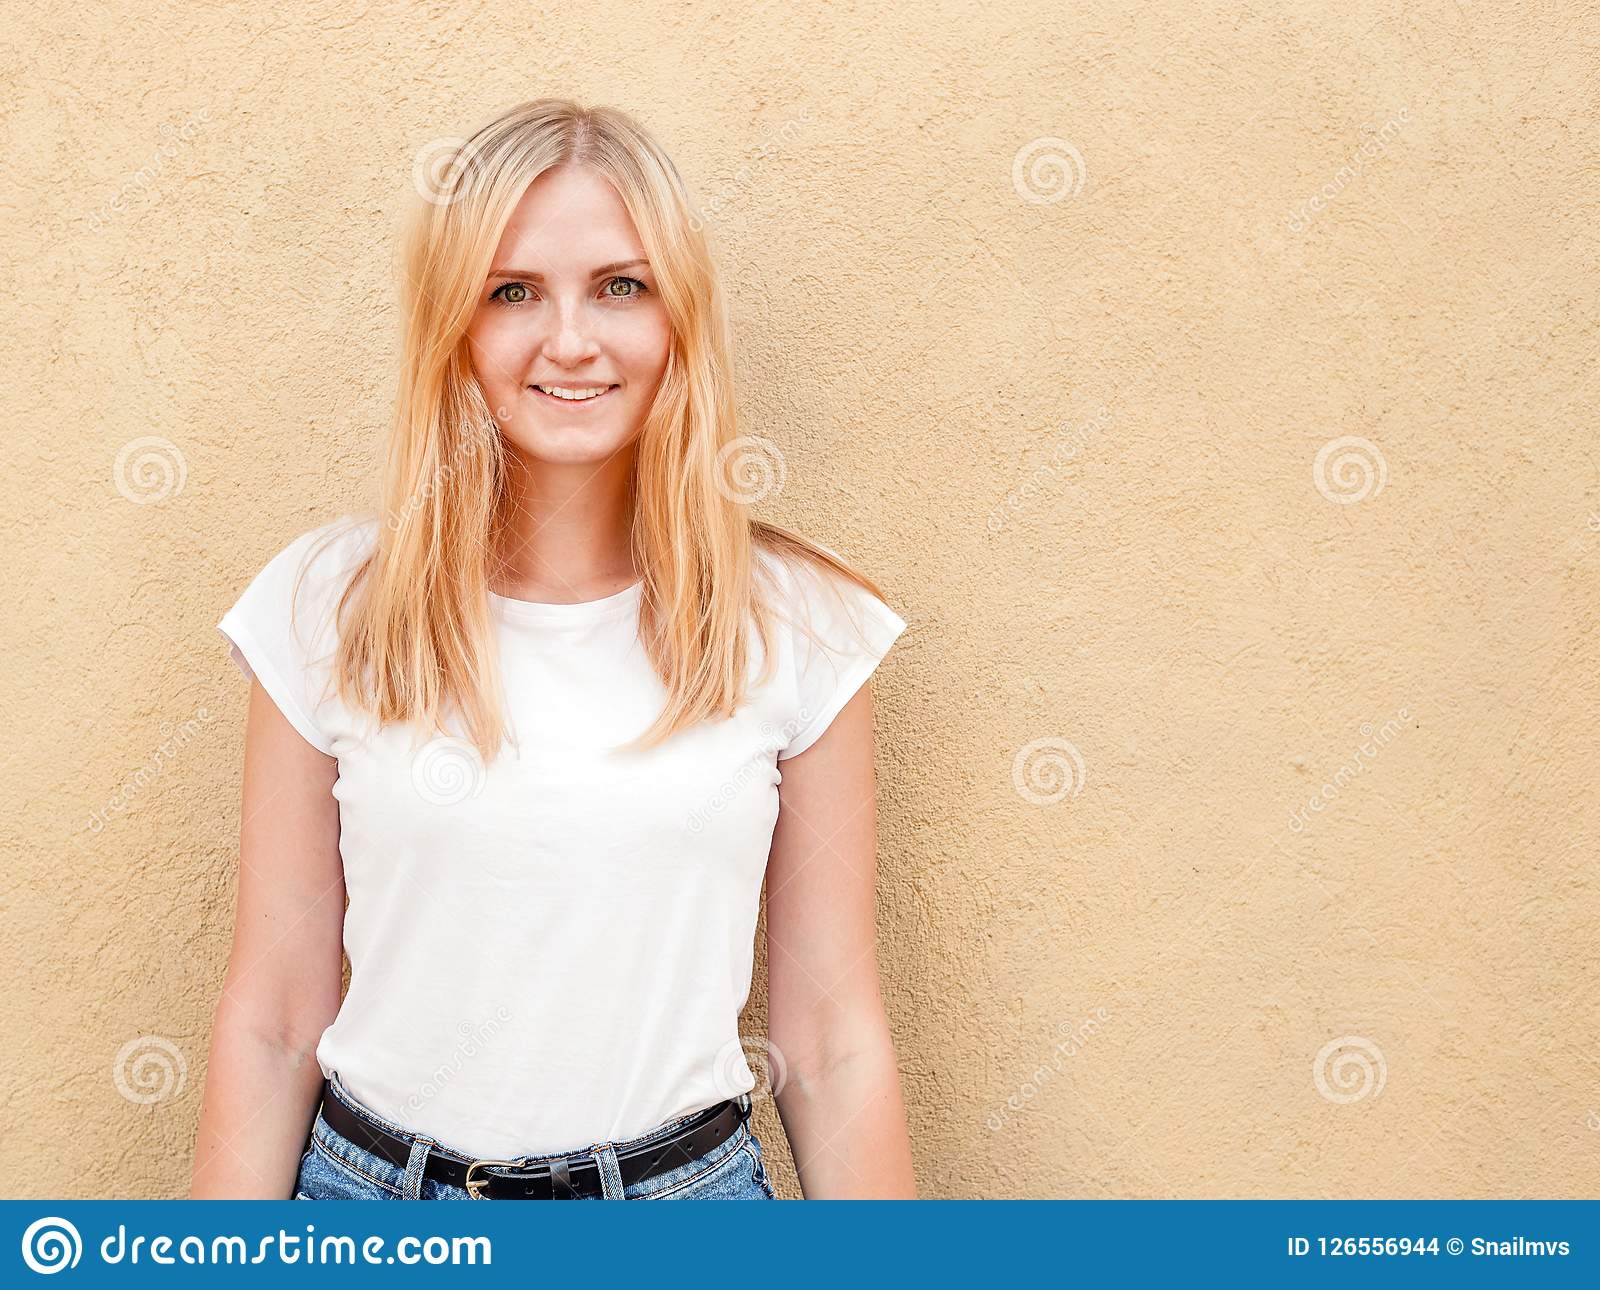 Hipster girl wearing blank white t-shirt and jeans posing against rough street wall, minimalist urban clothing style